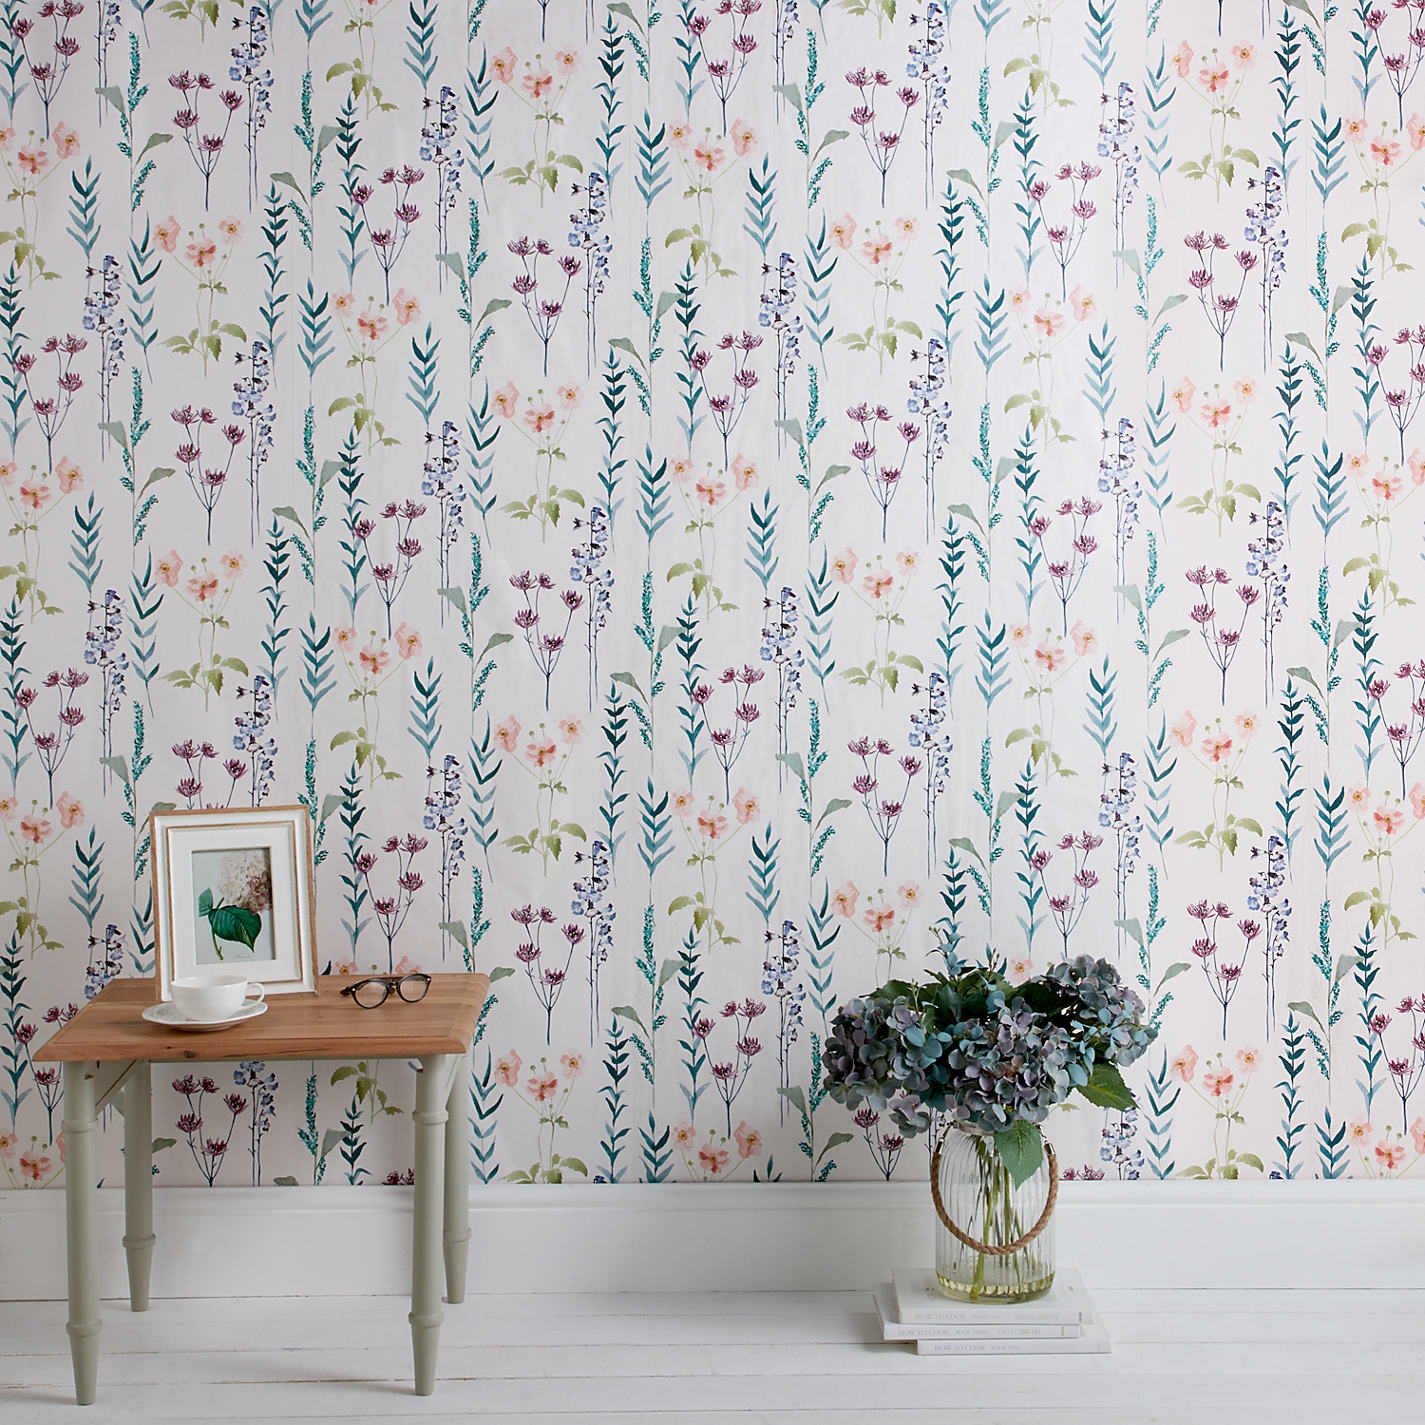 Buy john lewis longstock wallpaper multi john lewis buy john lewis longstock wallpaper multi online at johnlewis gumiabroncs Images